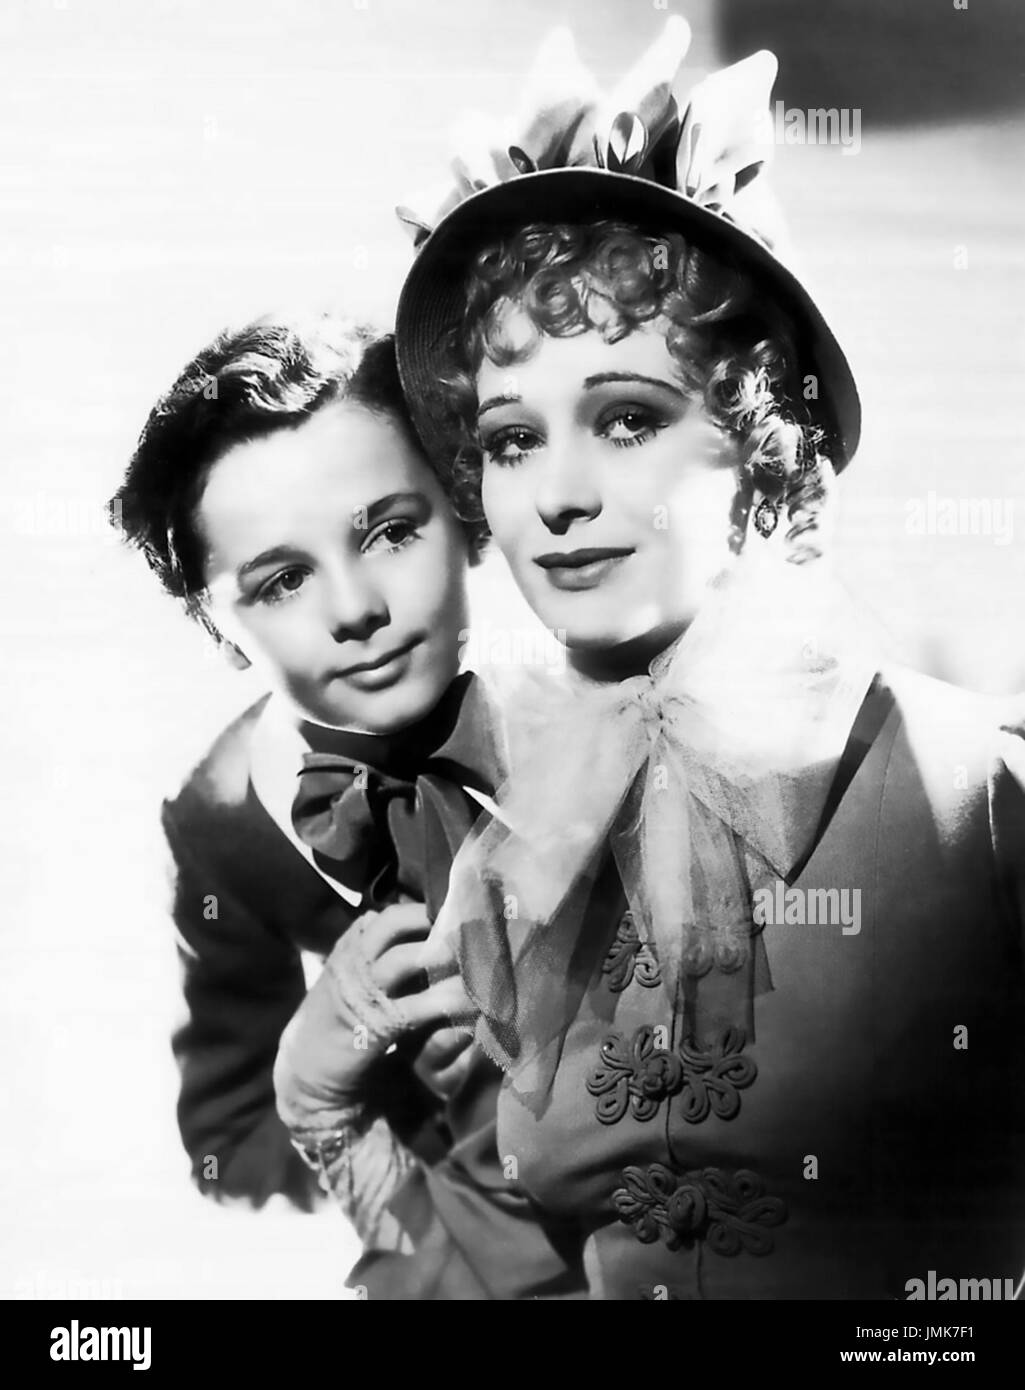 LITTLE LORD FAUNTLEROY 1936 United Artists film with Dolores Costello and Freddie Bartholomew Stock Photo